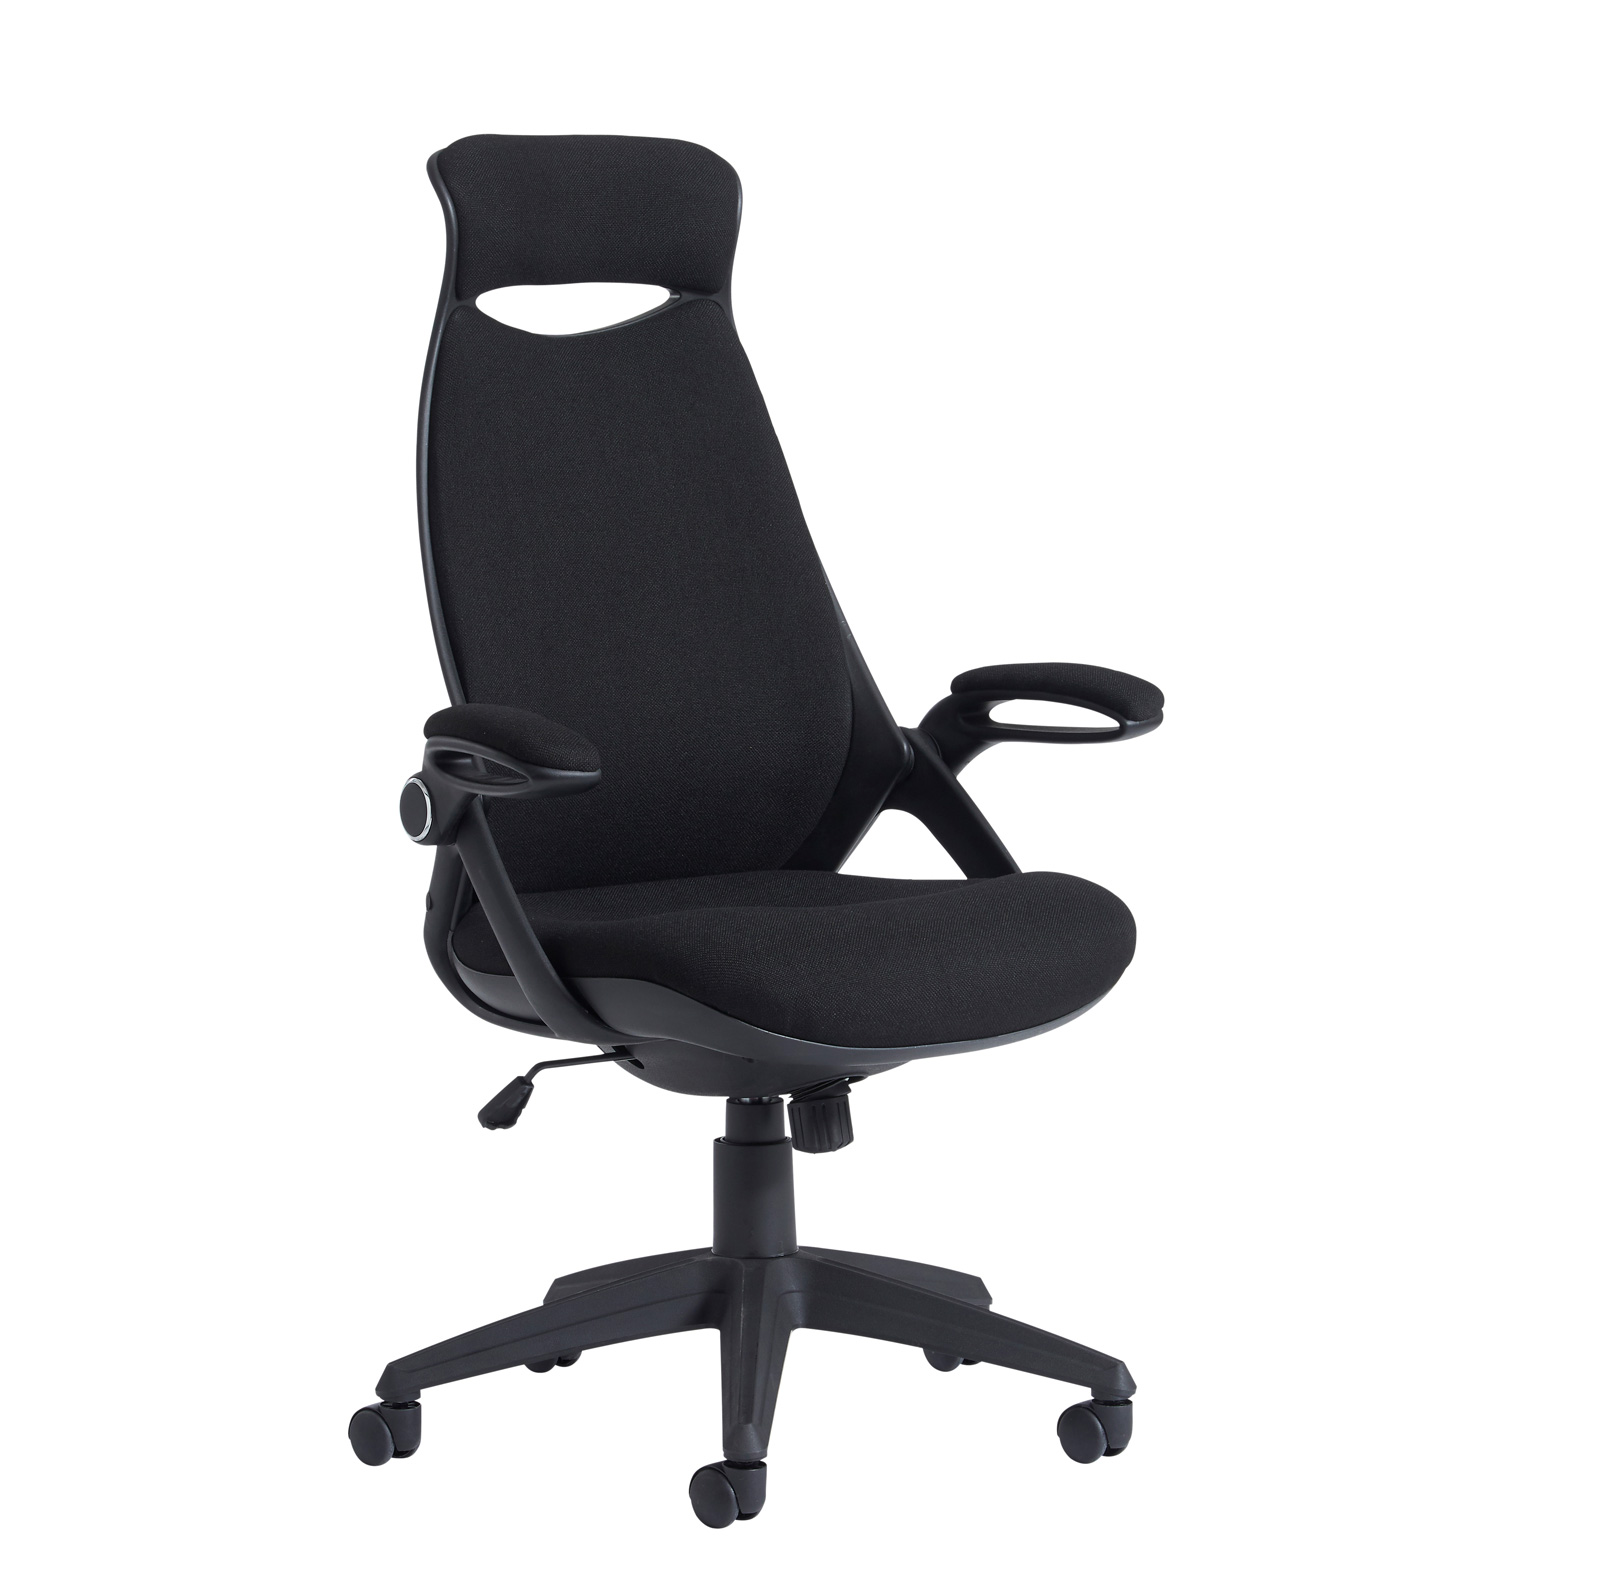 Tuscan fabric managers chair with head support - black